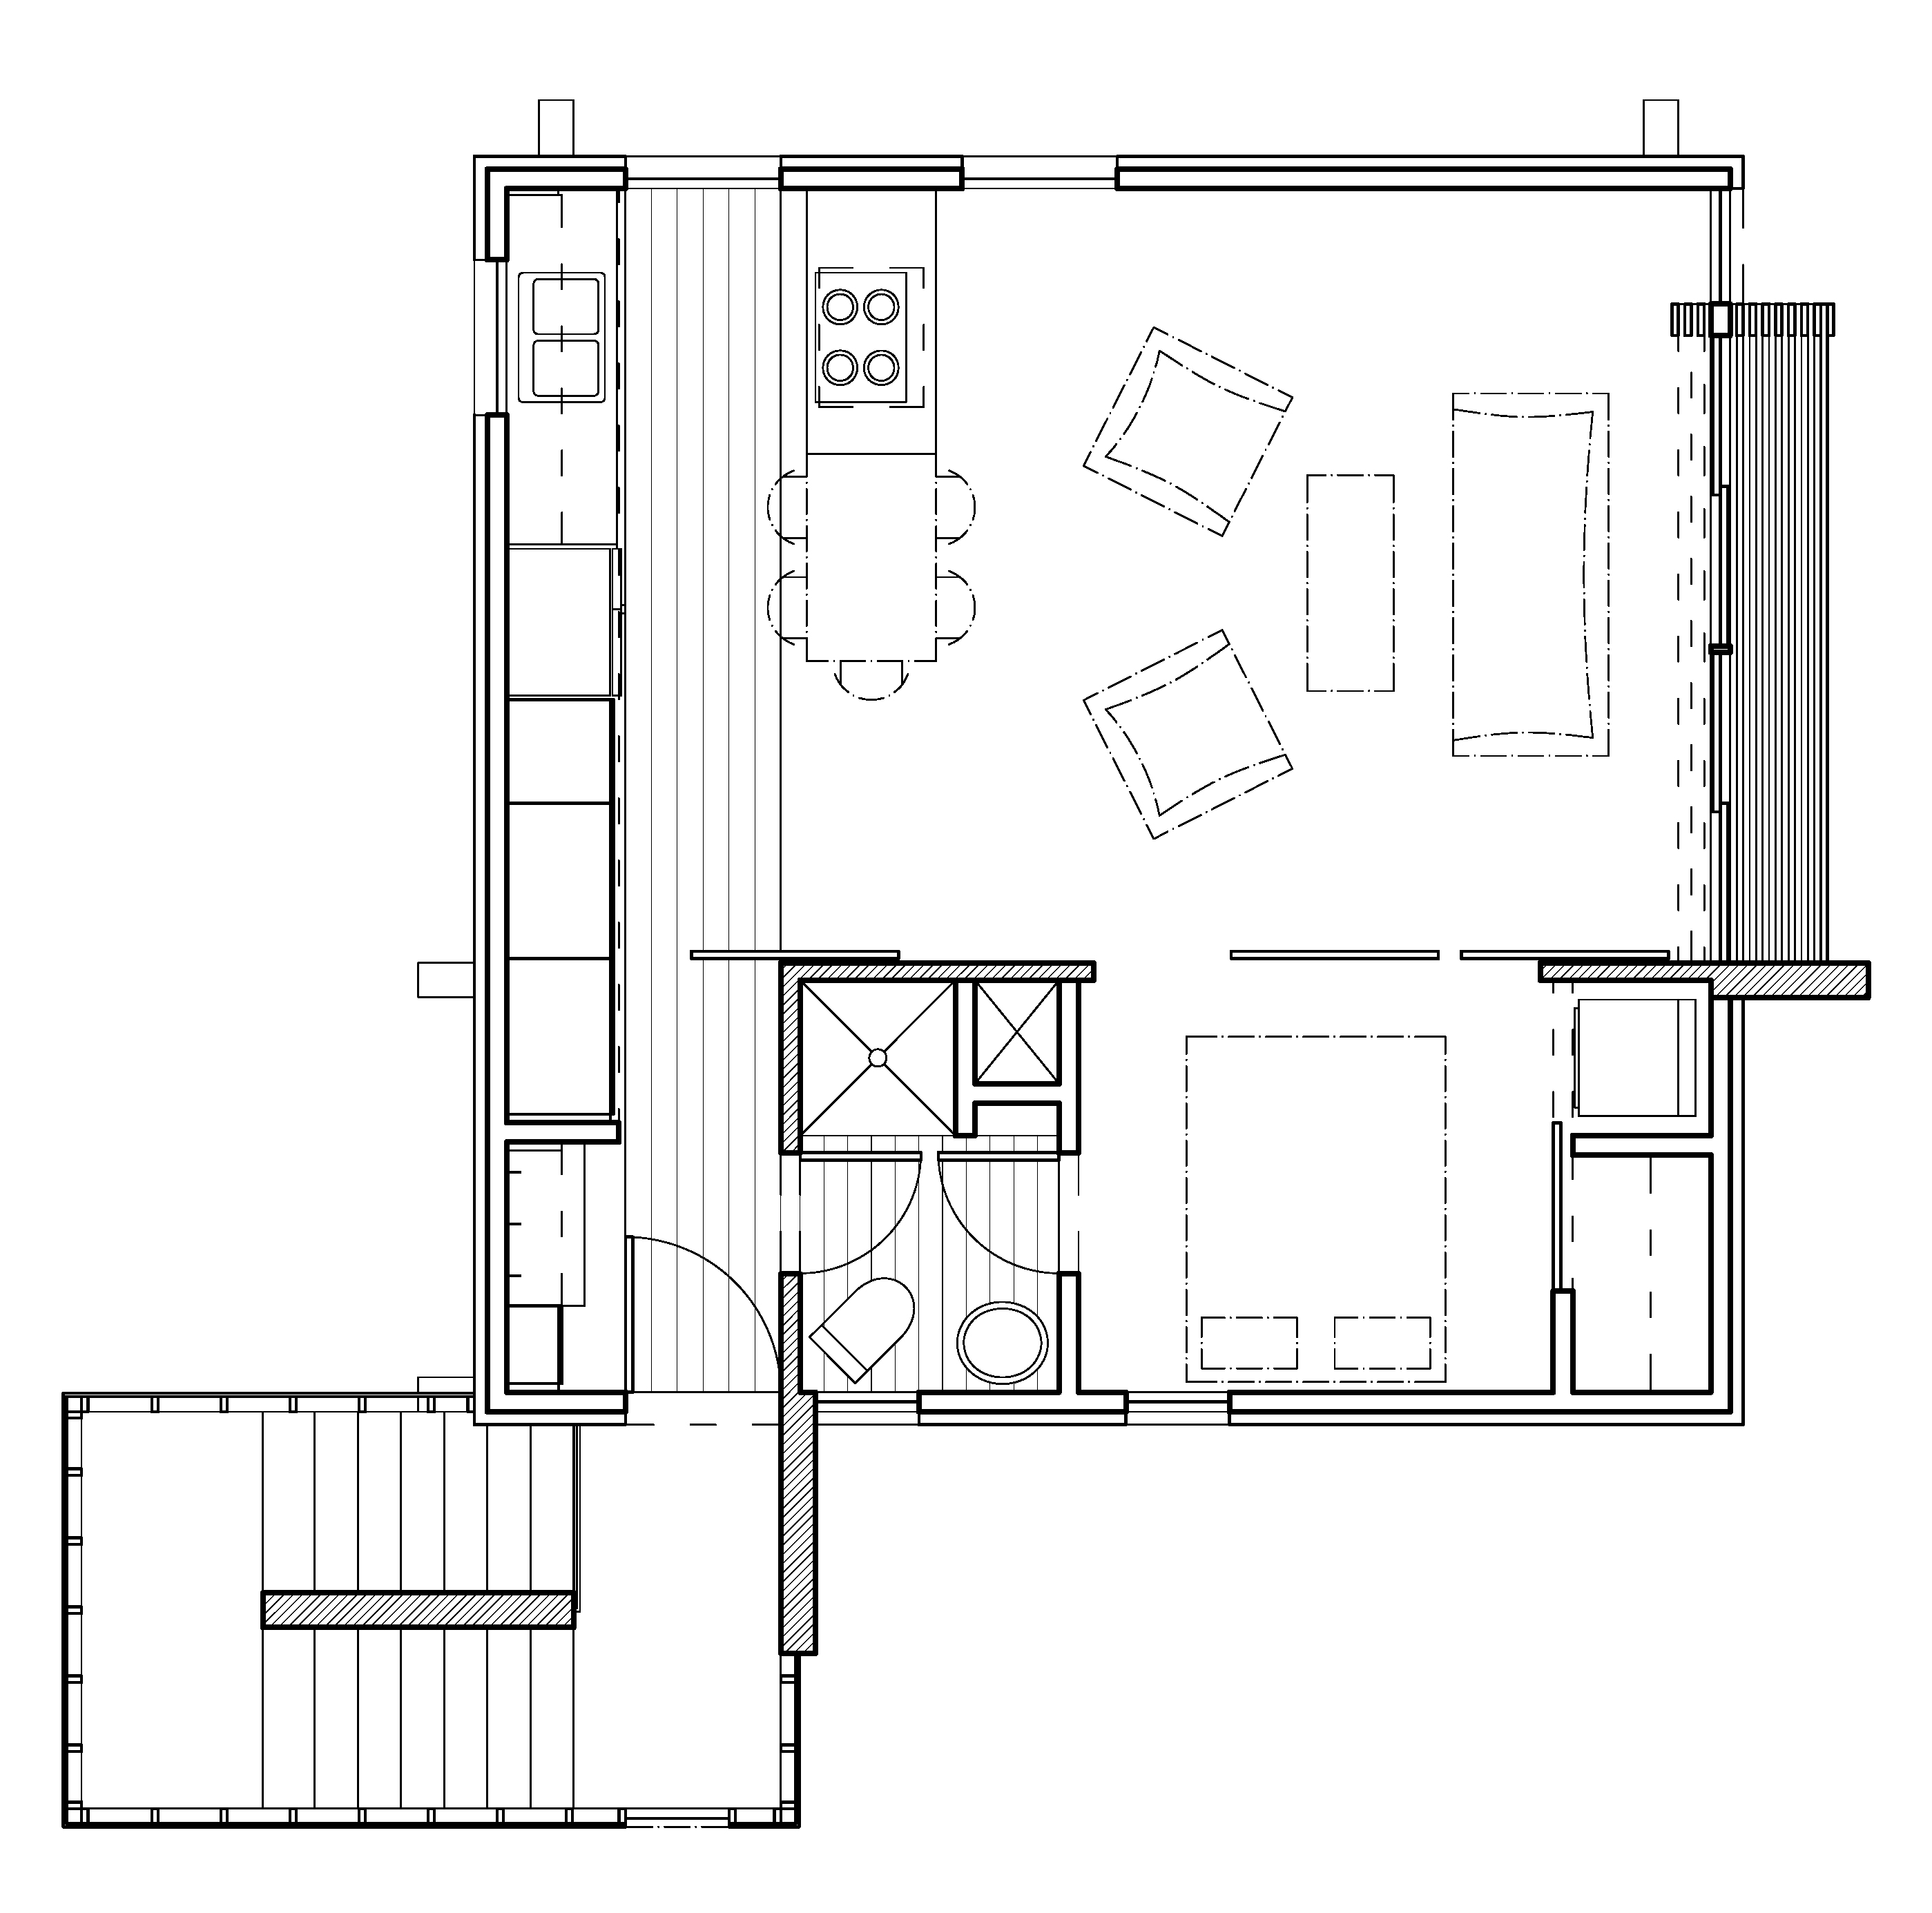 Modern house plans contemporary home designs floor plan 04 for Contemporary house floor plans